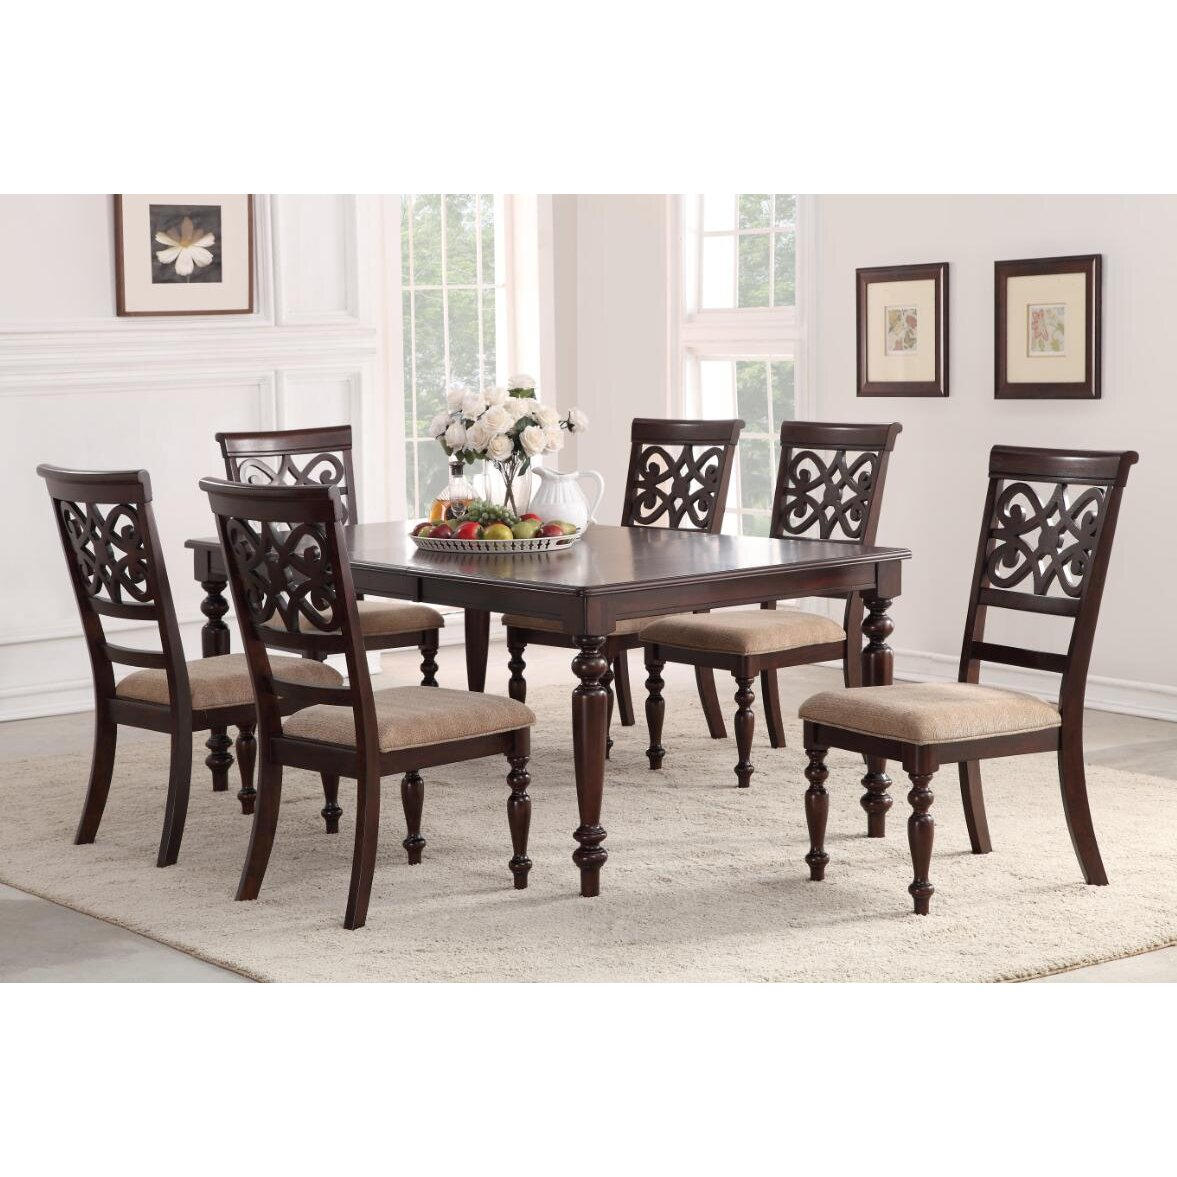 Darby Home Co Laconia Extendable Dining Table Wayfair : Darby Home Co25C225AE Laconia Extendable Dining Table from www.wayfair.com size 1177 x 1177 jpeg 232kB